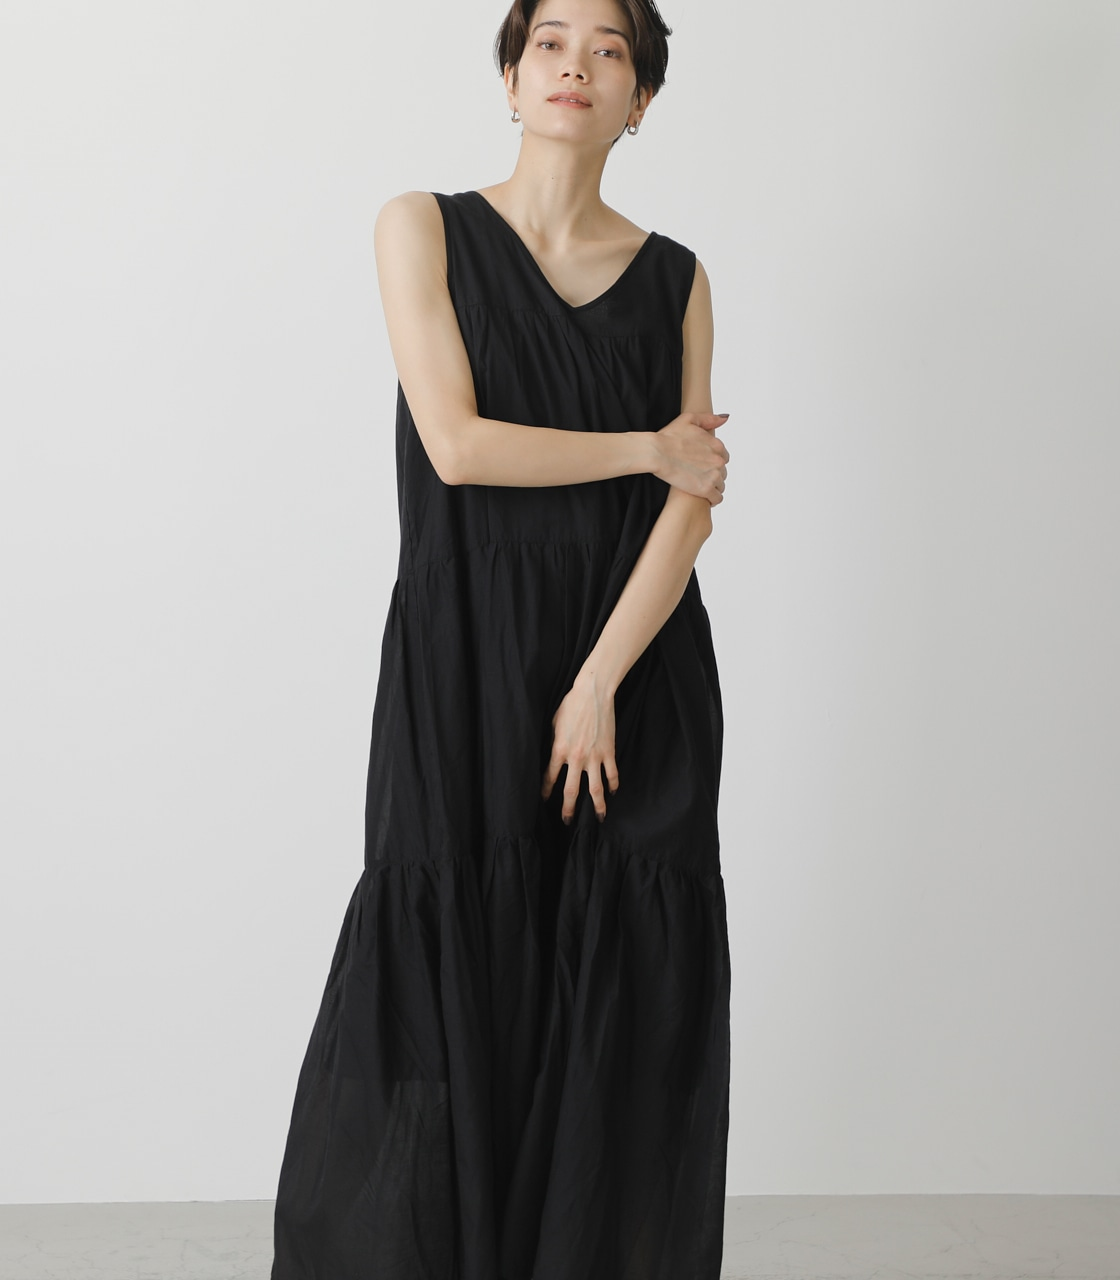 TIERED BOIL ONEPIECE/ティアードボイルワンピース 詳細画像 BLK 4